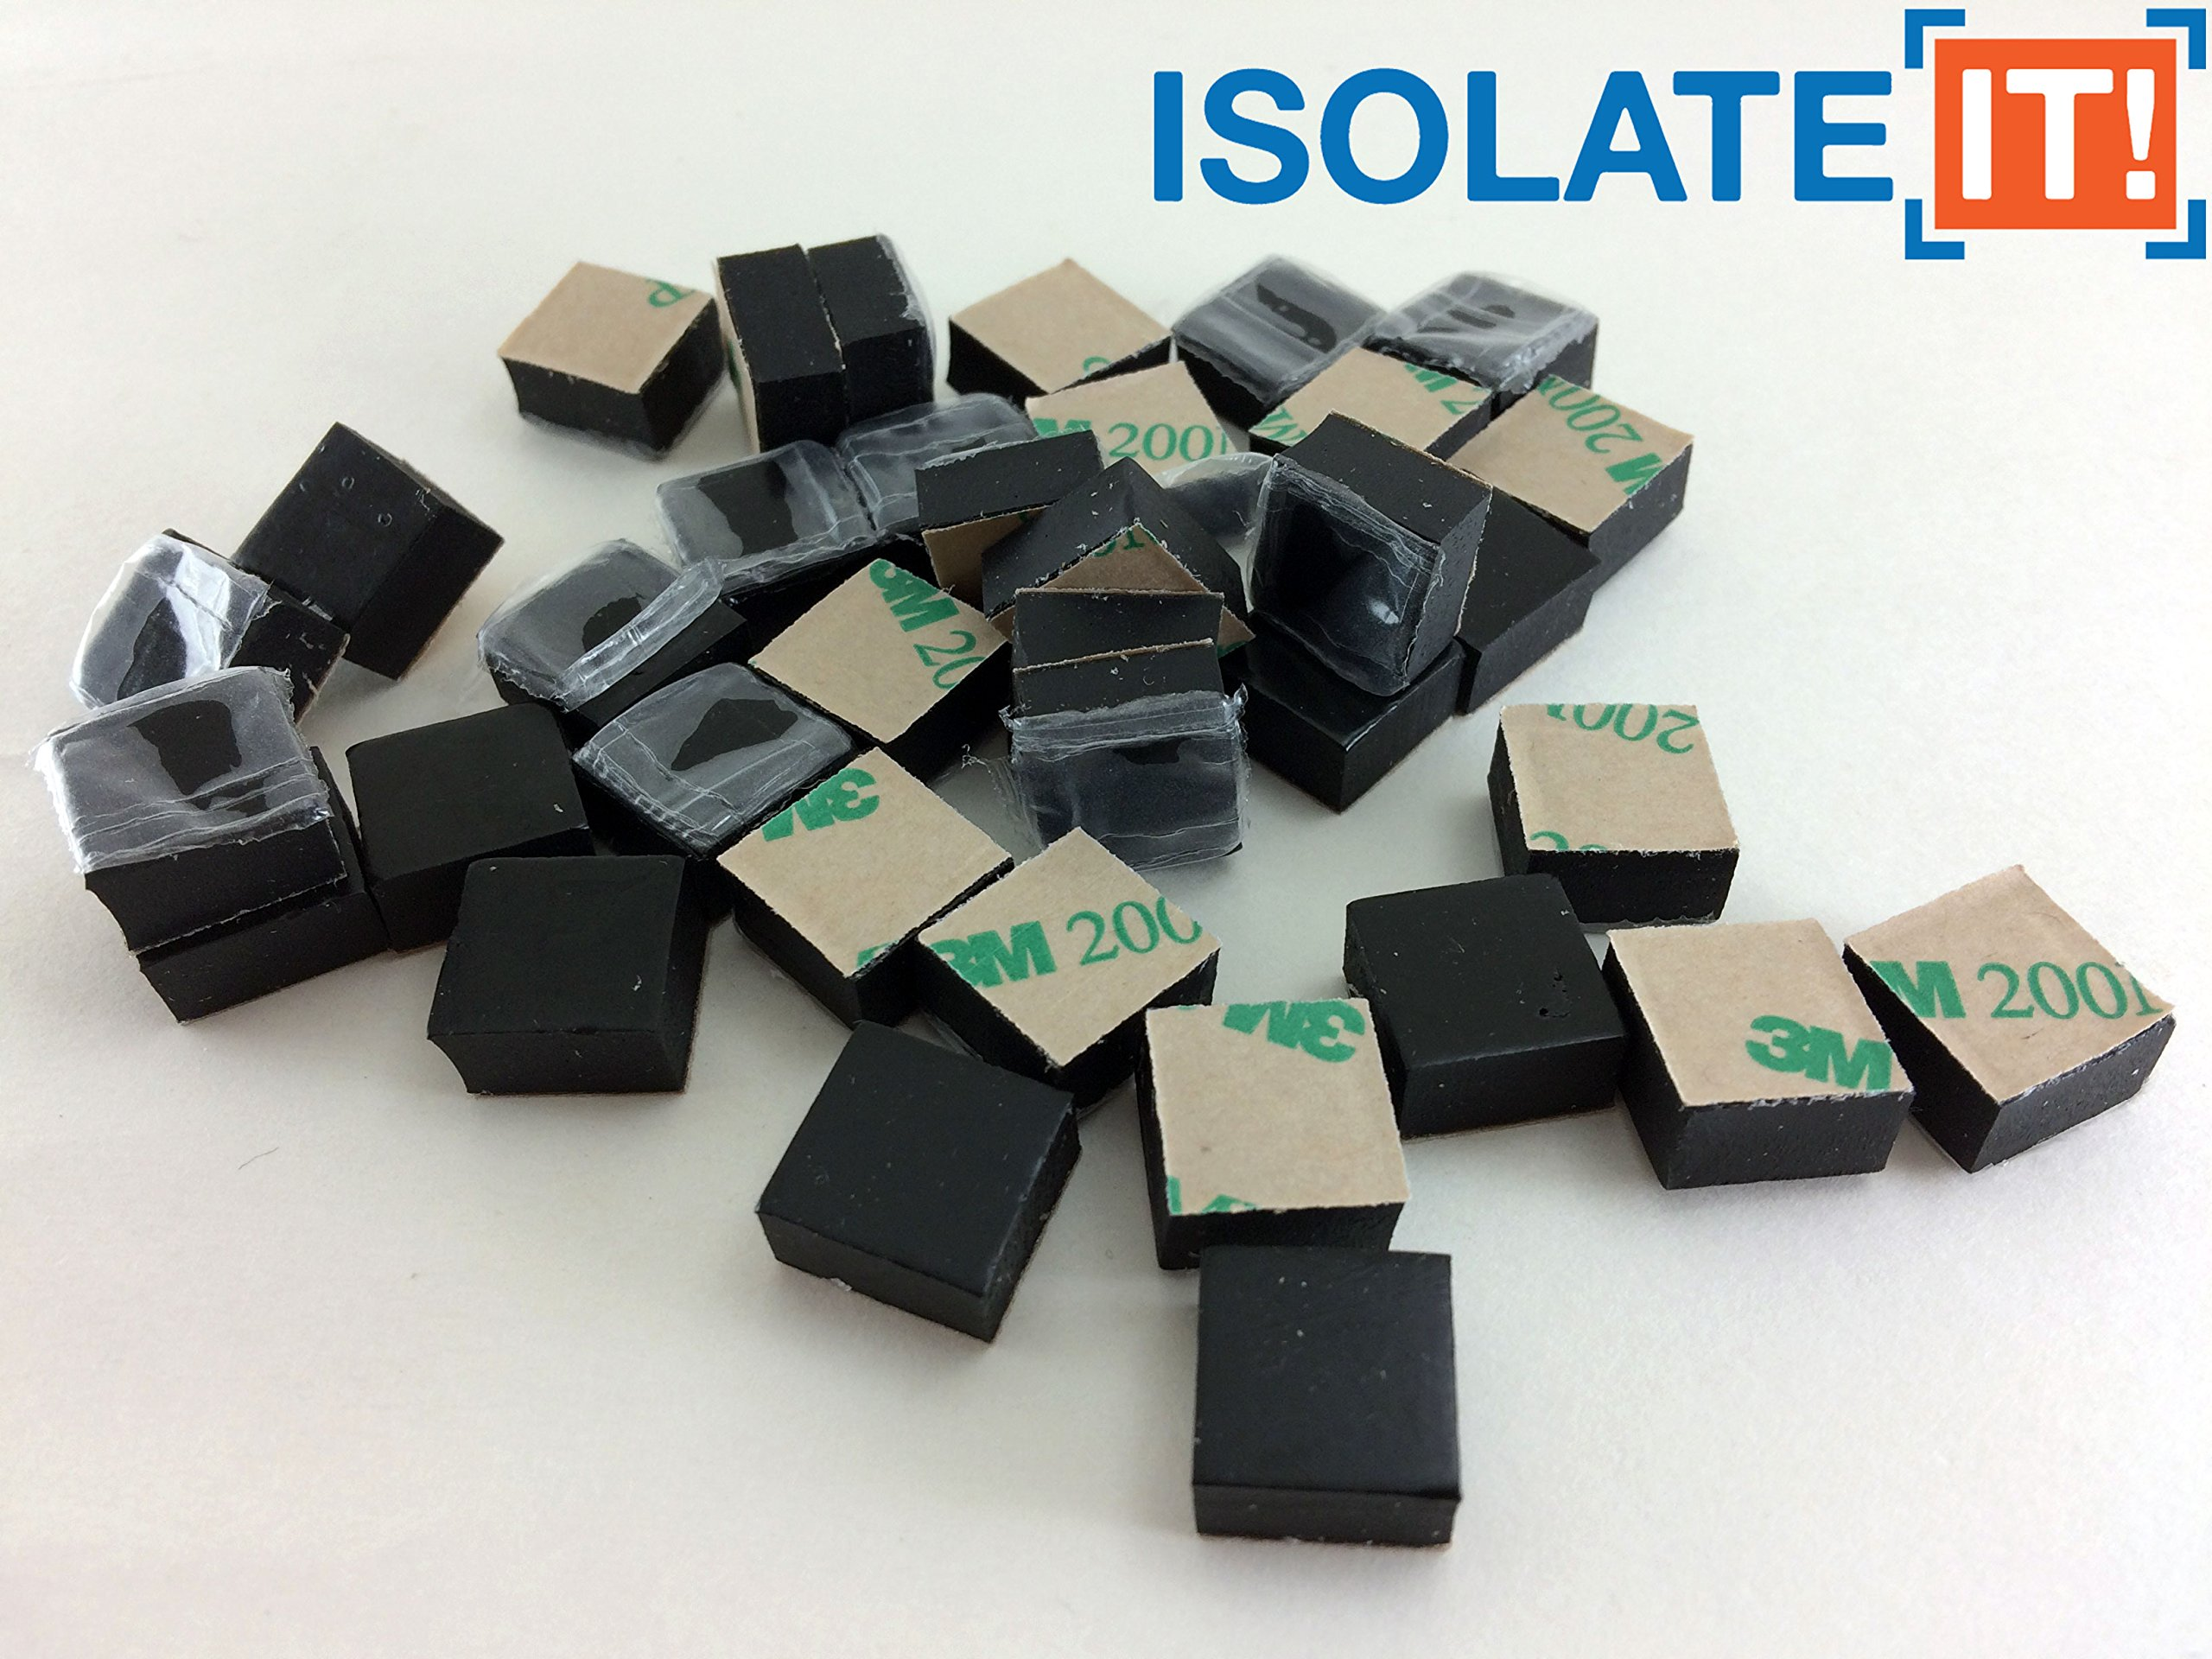 Isolate IT: Sorbothane Vibration Isolation Square Pad 1/4'' Thick 1/2'' x 1/2'' 70 Duro with 3M PSA - 36 Pack